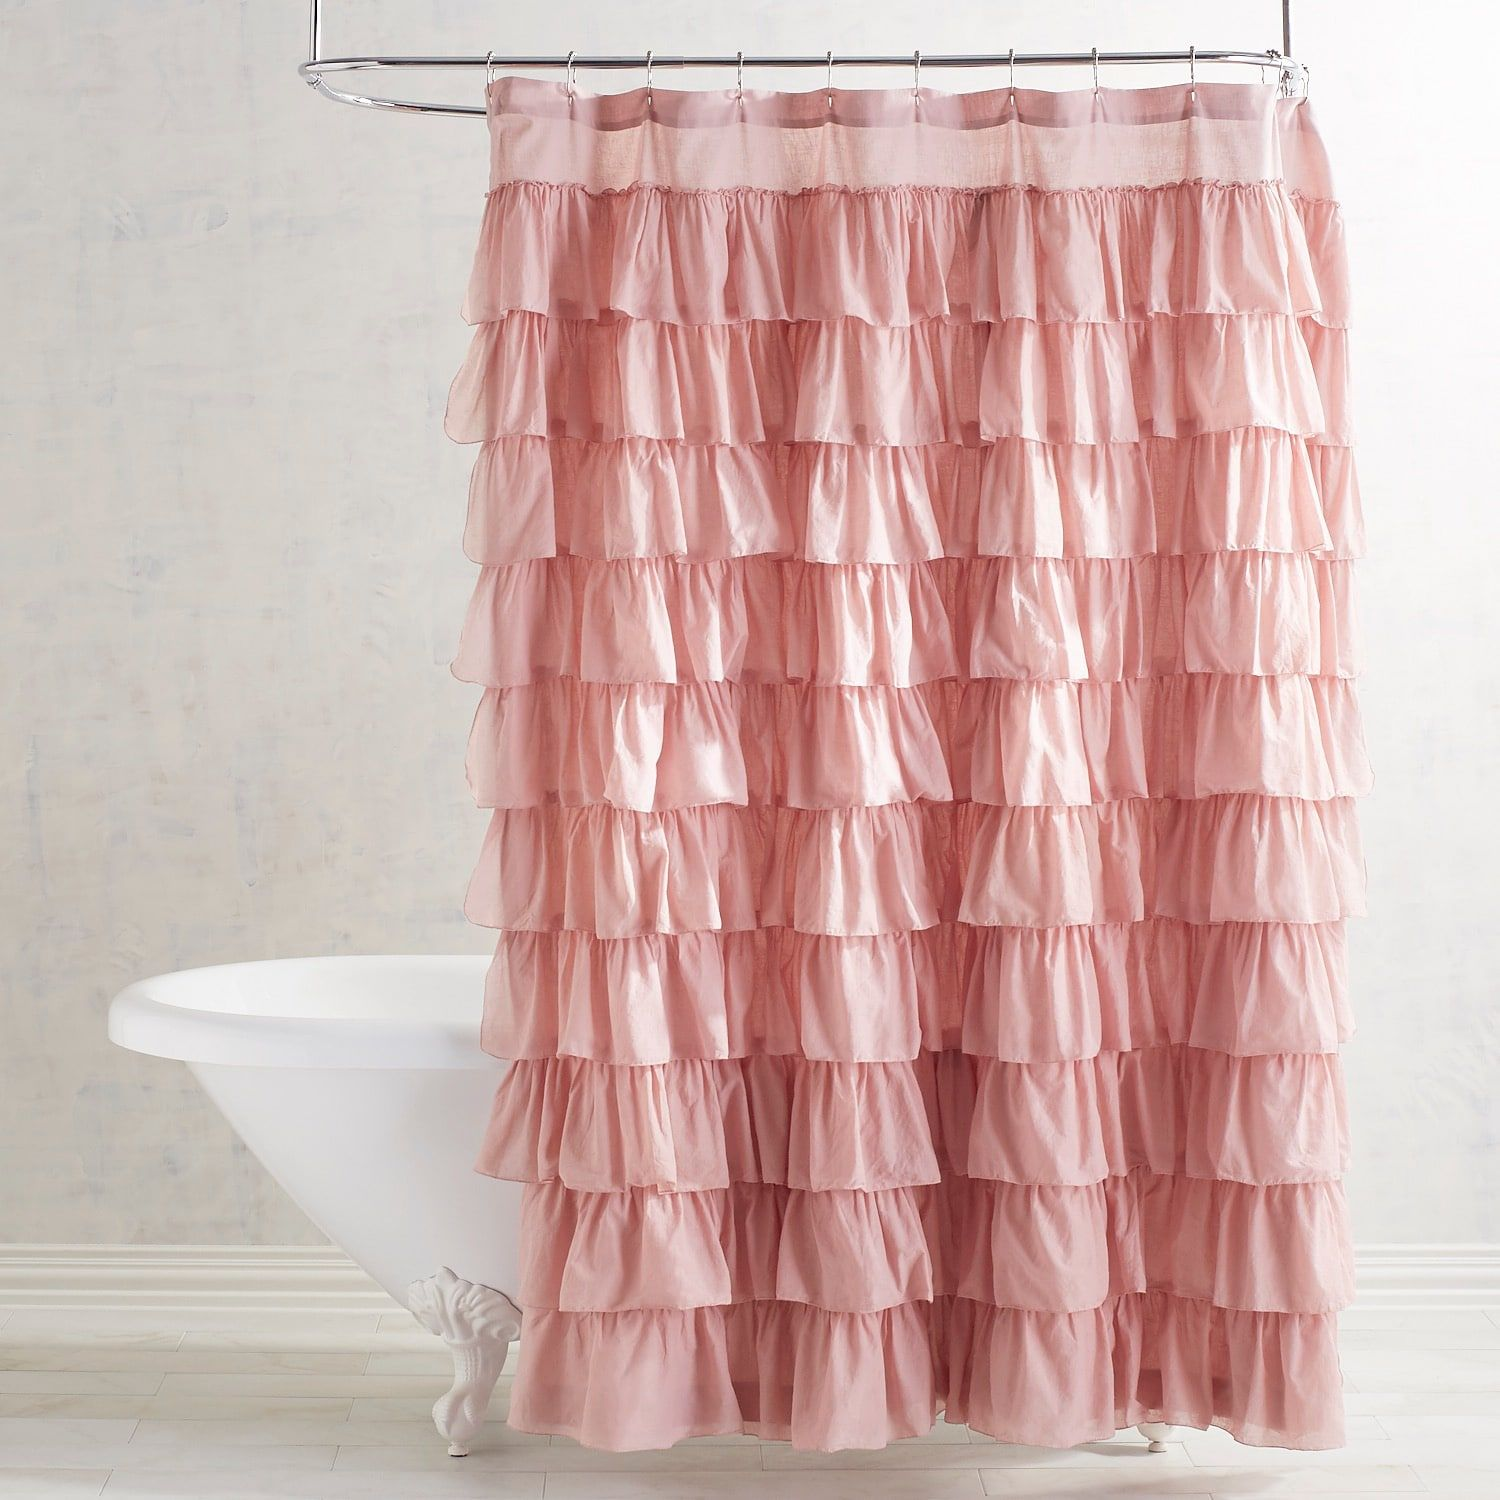 Matching Bedroom And Bathroom Sets: Ruffled Blush Shower Curtain